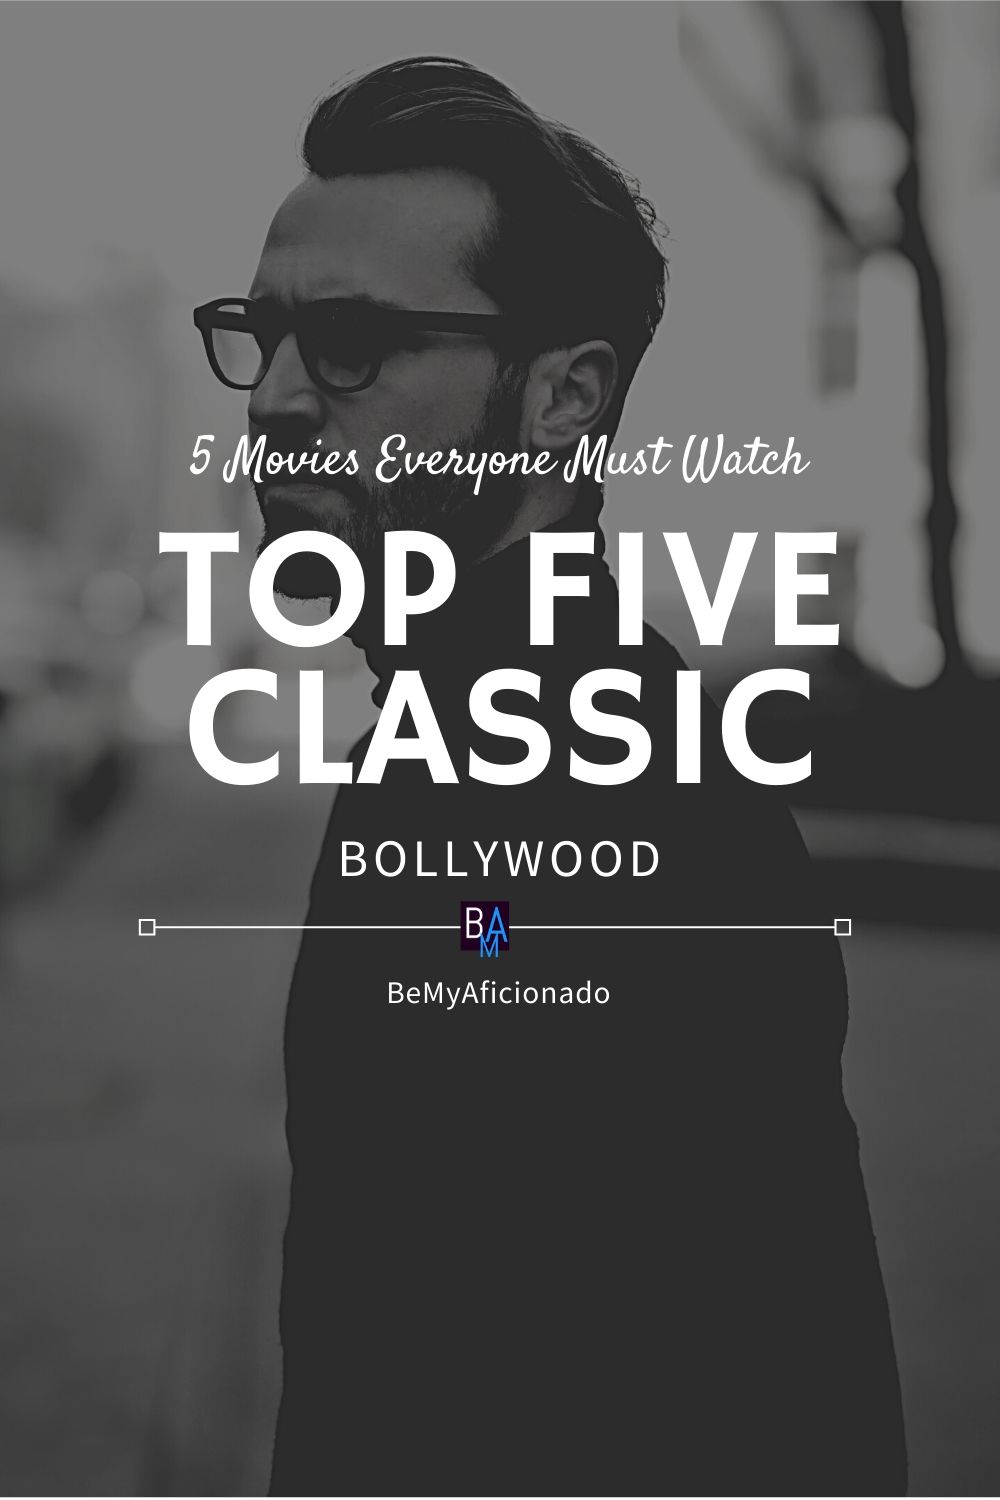 5 Movies Everyone Must Watch